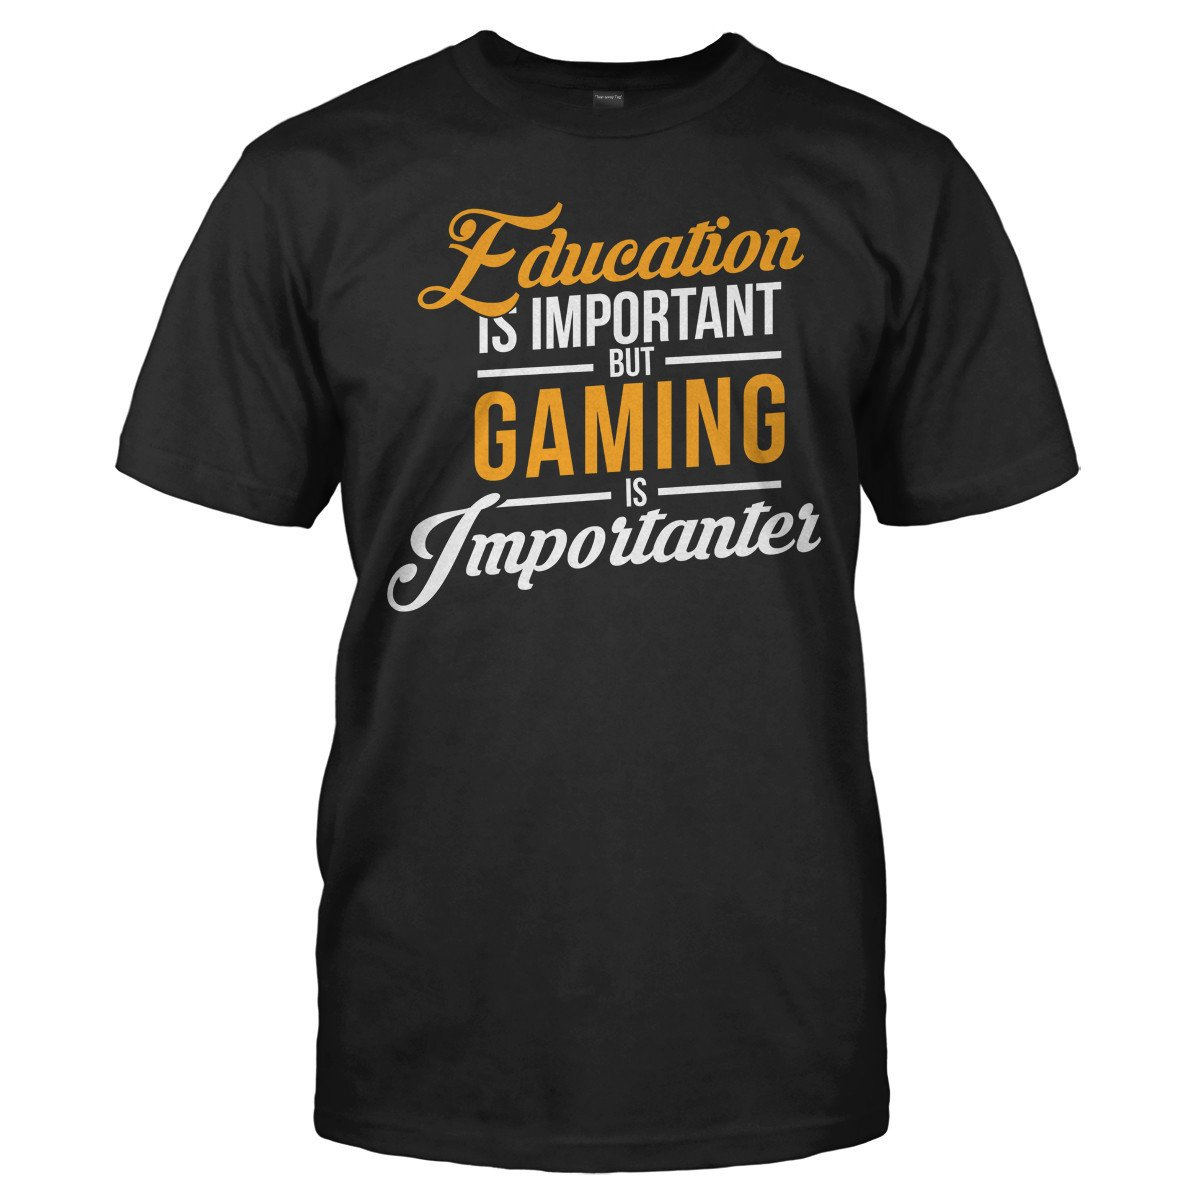 Education is Important, But Gaming is Importanter - T Shirt